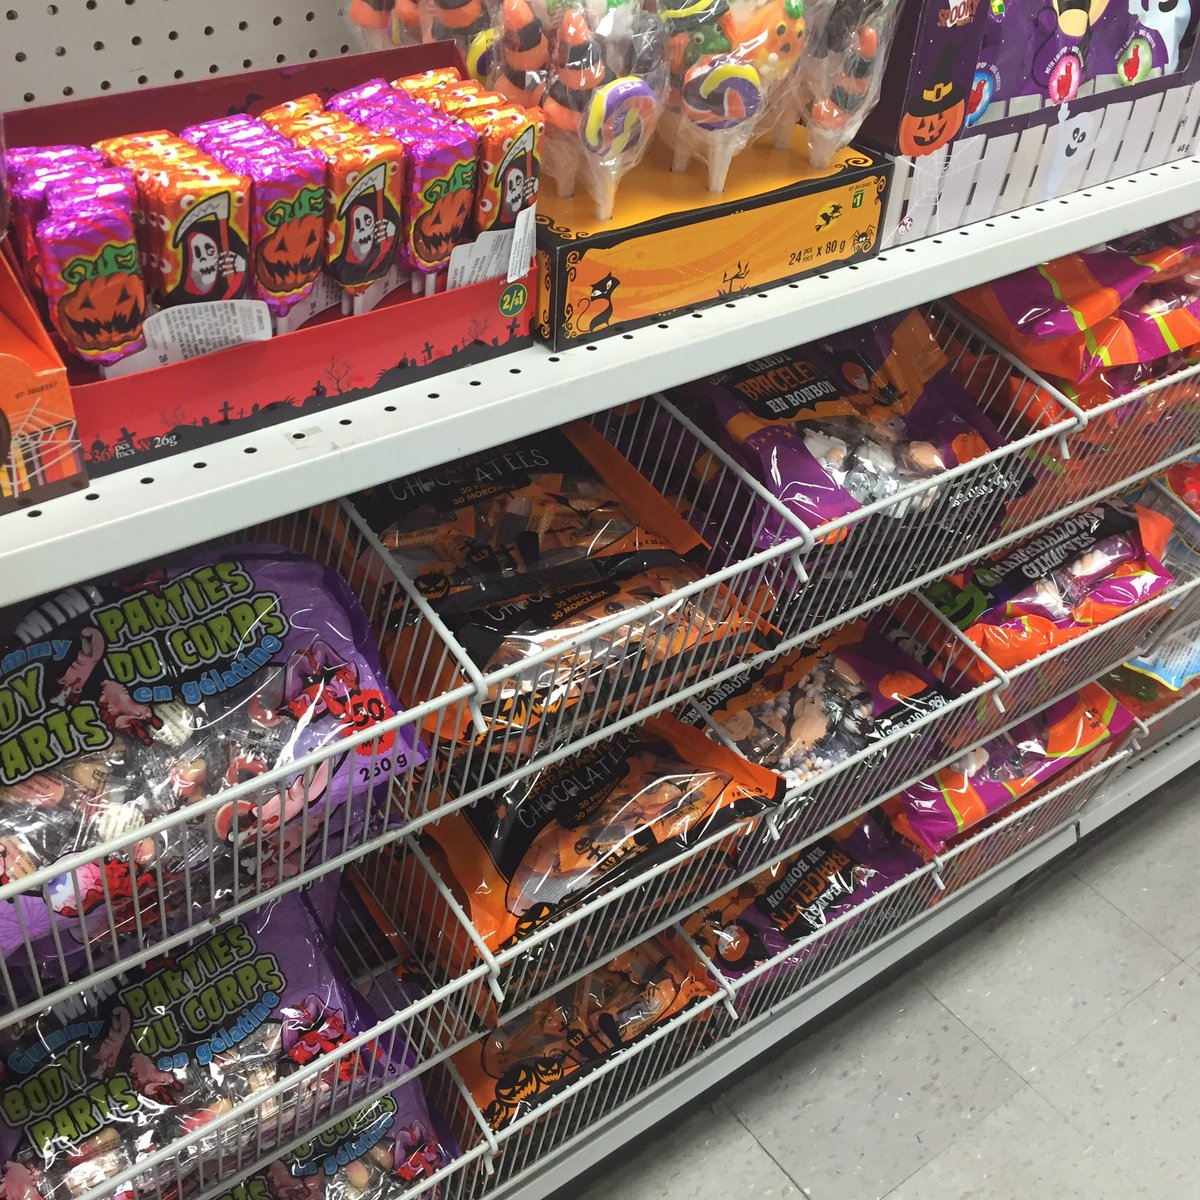 Andy Bowers On Twitter Dollar Store Has Halloween Candy Costco Has Christmas Trees Let Me Know When You Spot An Easter Creme Egg